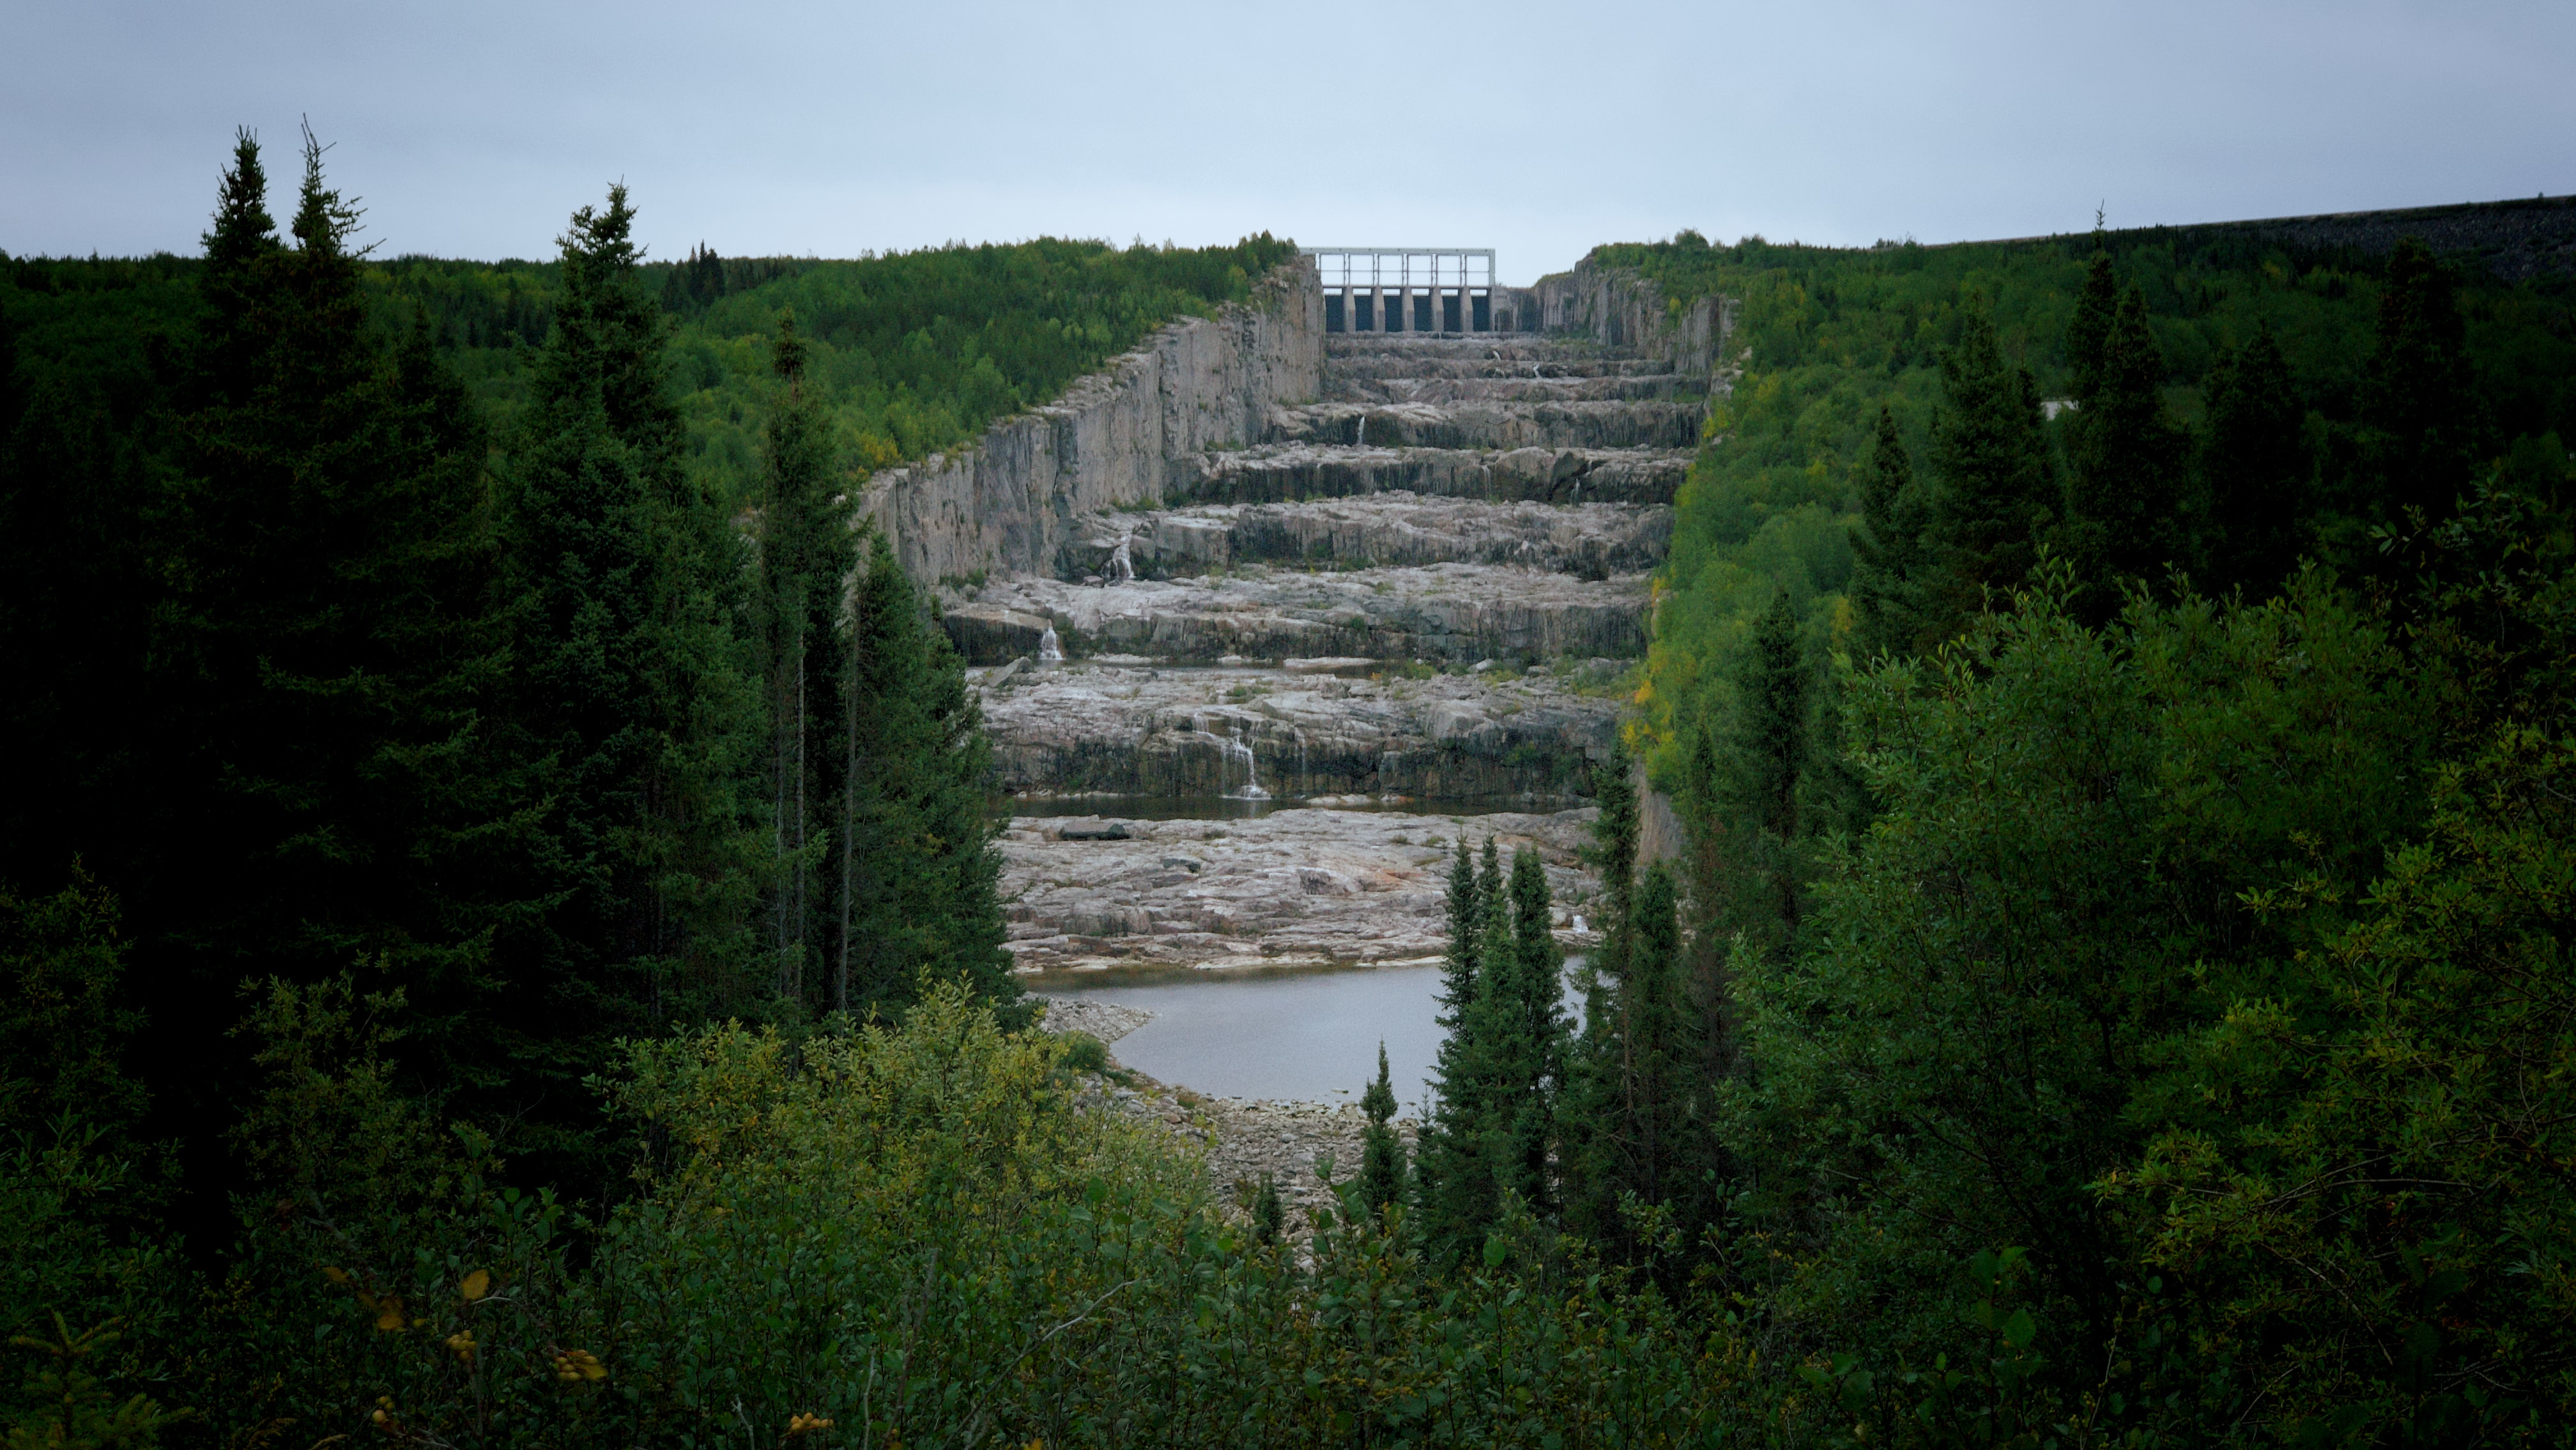 A picture of the Robert-Bourassa Dam with green grass and trees on each side and dam at the top, center of the image with stepped rocks in the middle.